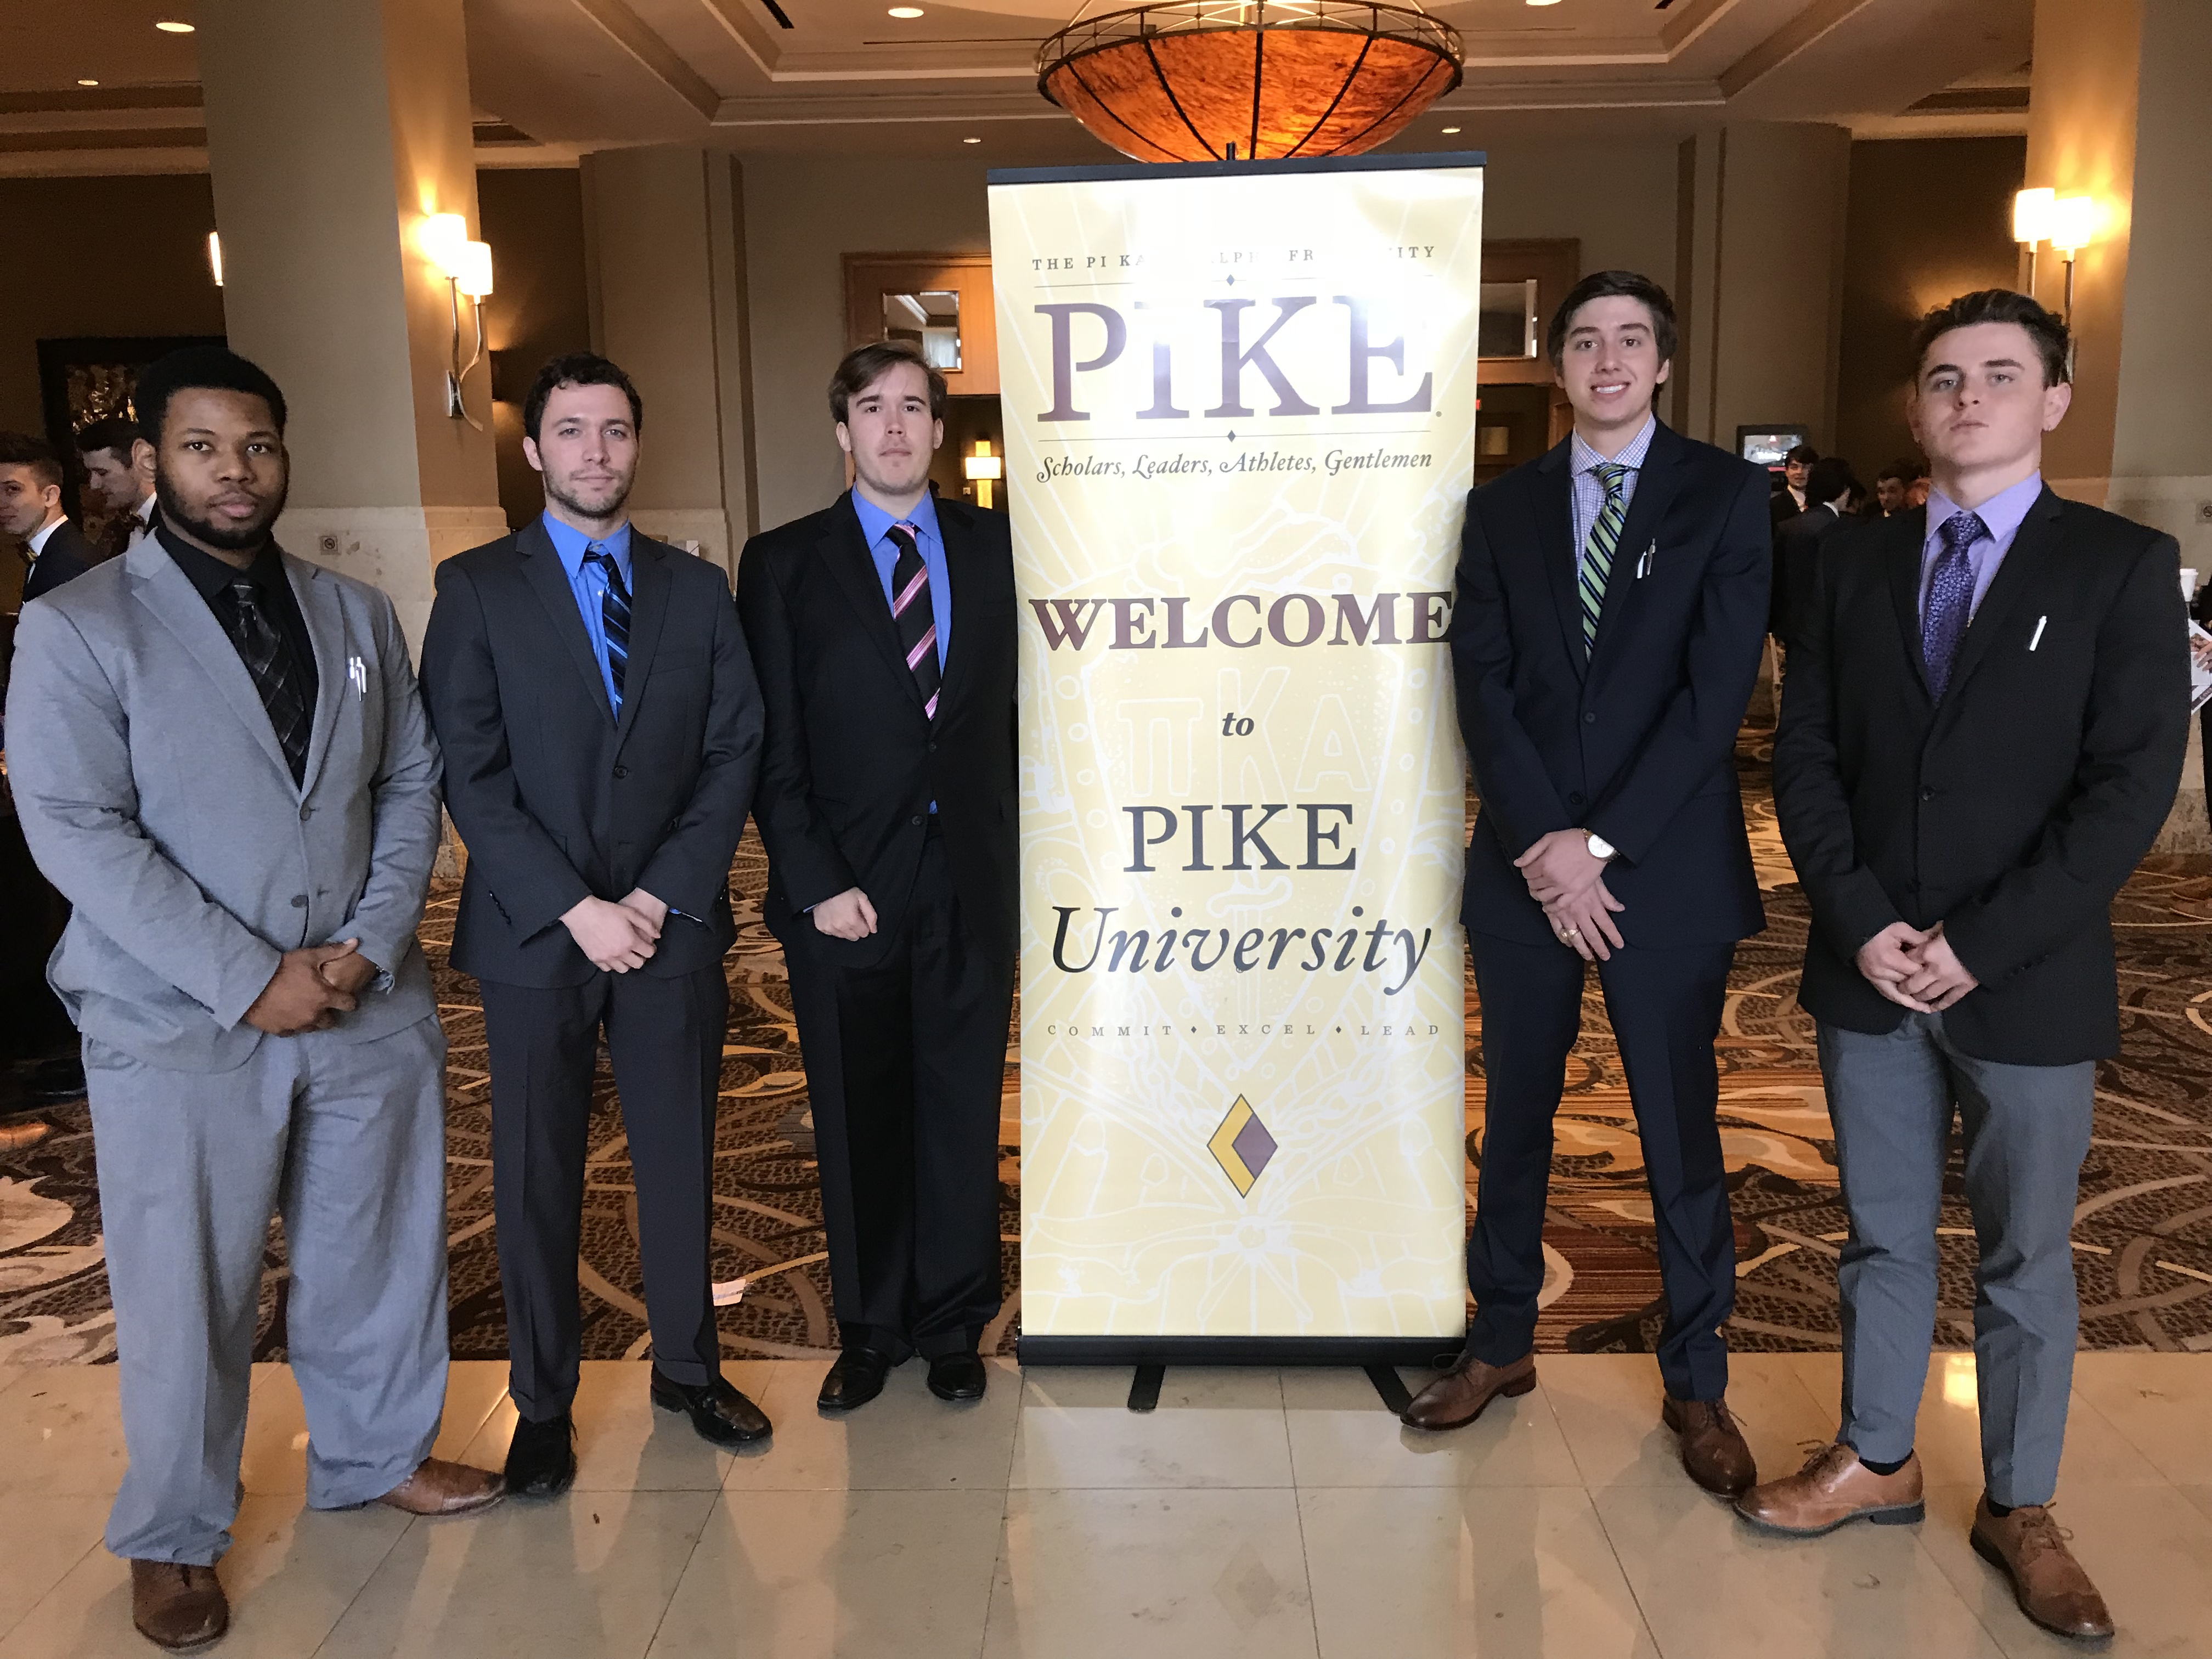 5 men in suites standing next to a sign that welcomes them to Pike University.